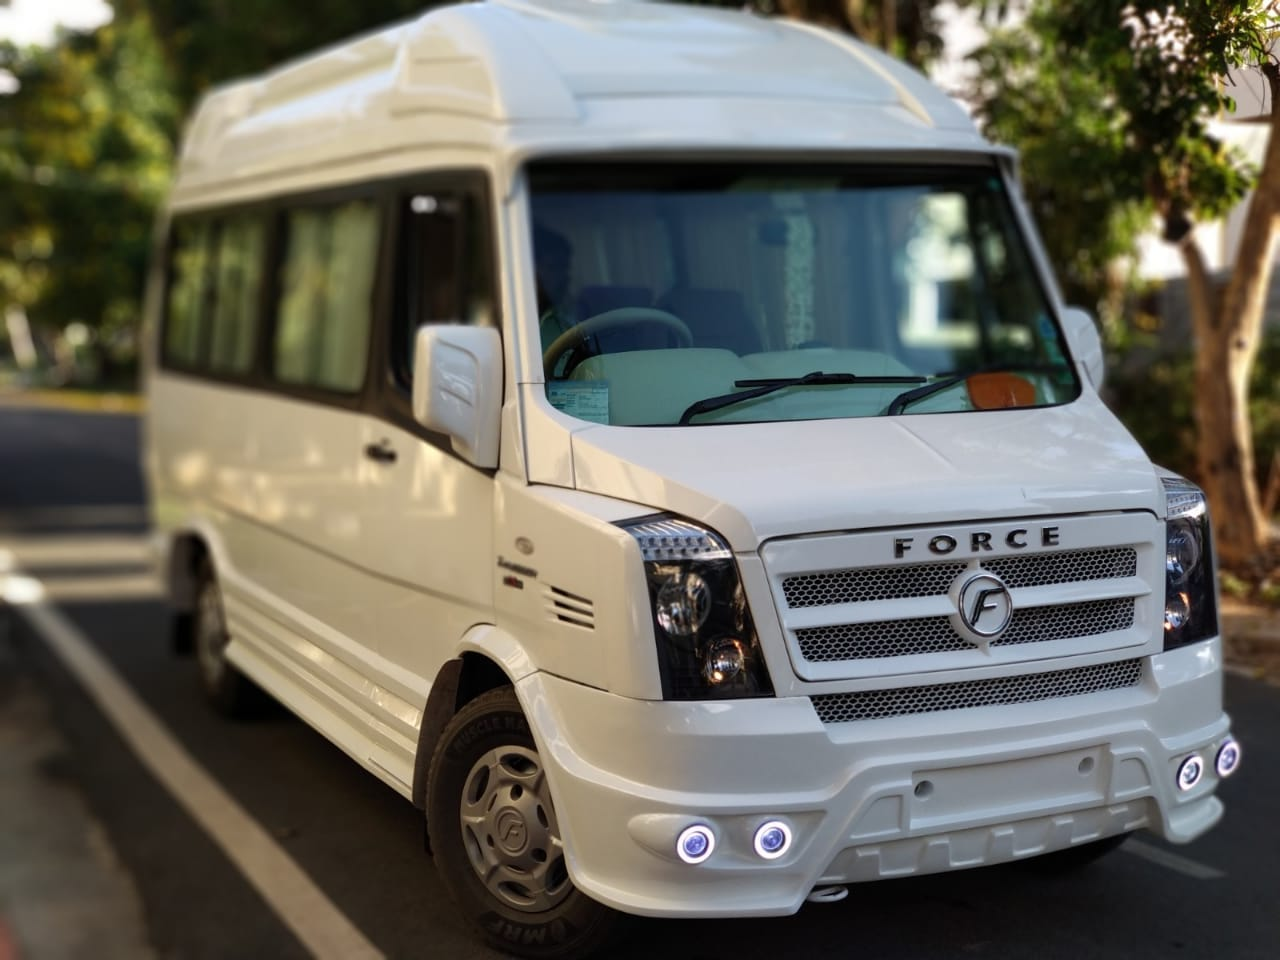 RENT TEMPO TRAVELLER IN BANGALORE   GetMyCabs +91 9008644559   BANGALORE TO MYSORE TAXI,BANGALORE TO COORG TAXI, BANGALORE TO OOTY TAXI,BANGALORE TO TIRUPATI TAXI,  BANGALORE TO CHENNAI TAXI, BANGALORE TO HYDERABAD TAXI - GL27798